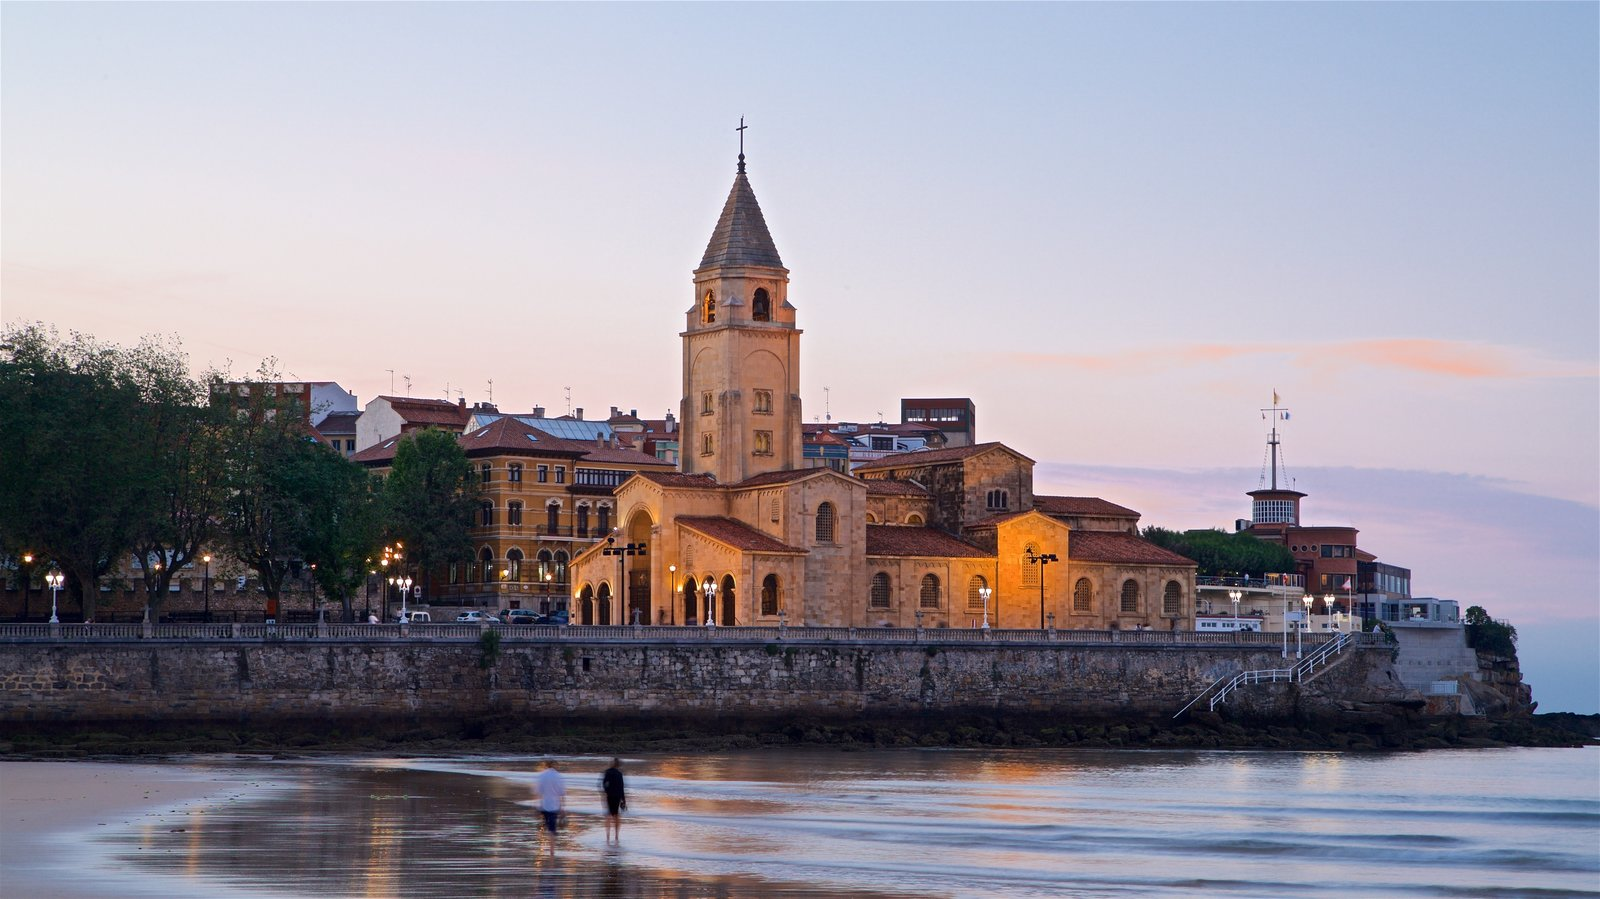 San Lorenzo Beach showing heritage architecture, a sunset and a coastal town